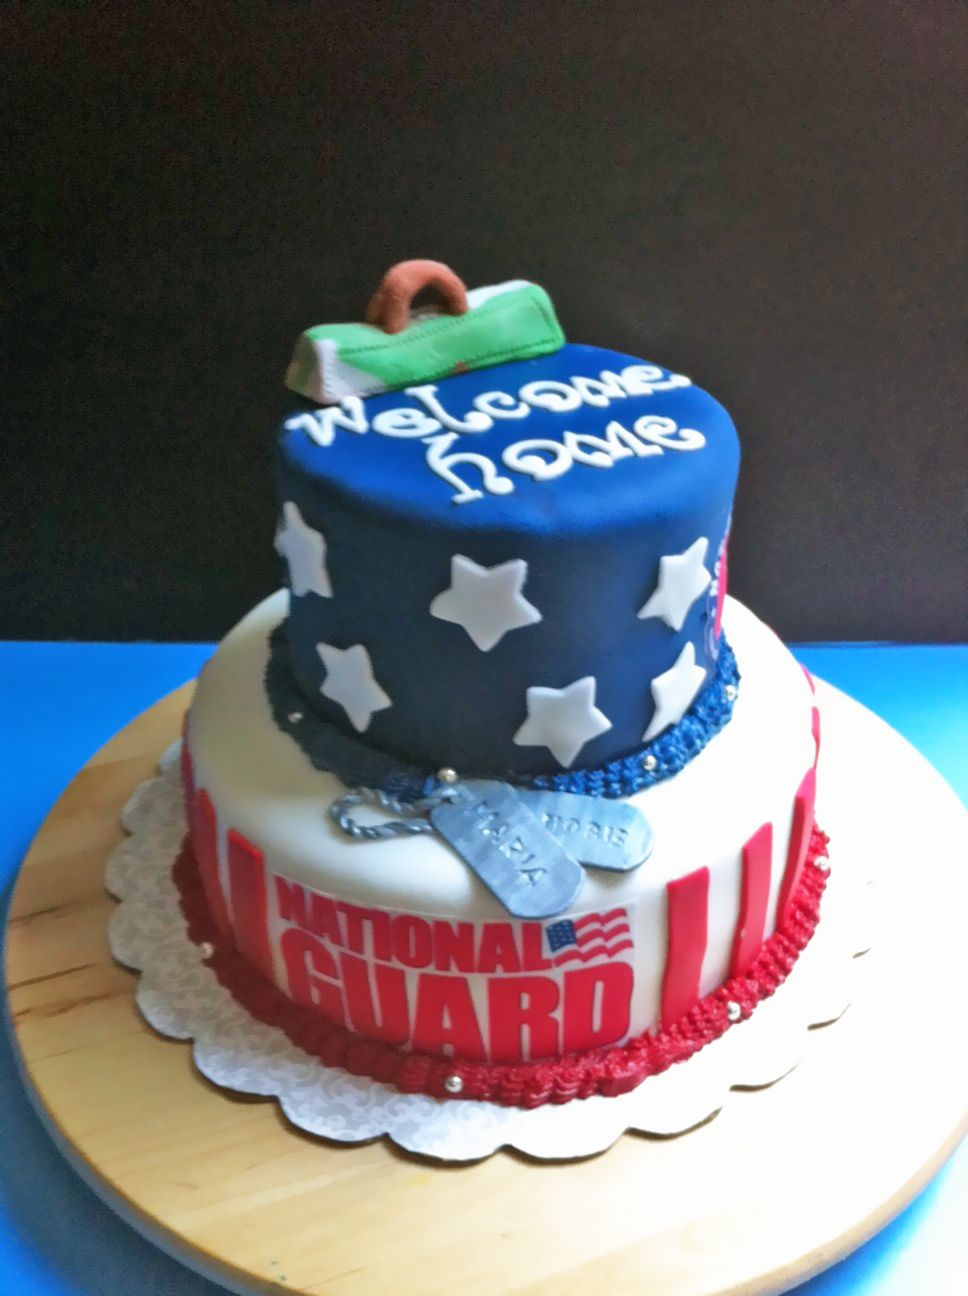 National Guard Cake Sweetpea Cake Cupcake Boutique Cake